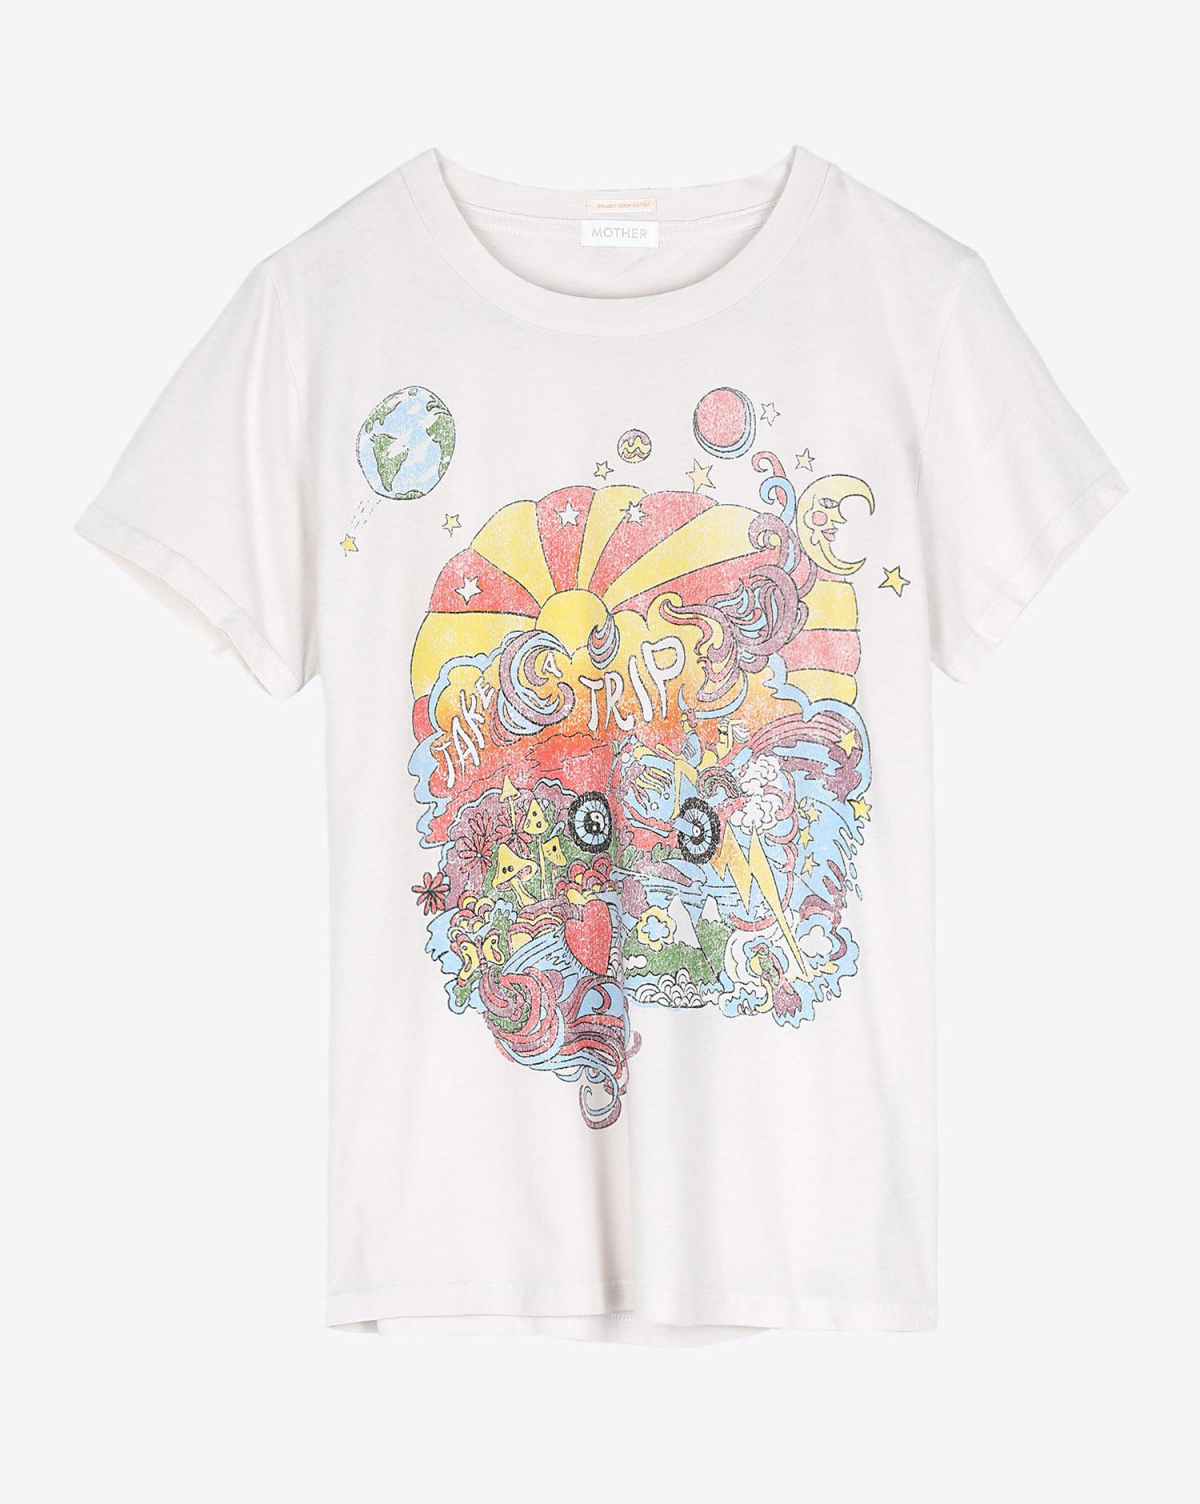 Mother Denim The Little Goodie Goodie Tee - Take A Trip